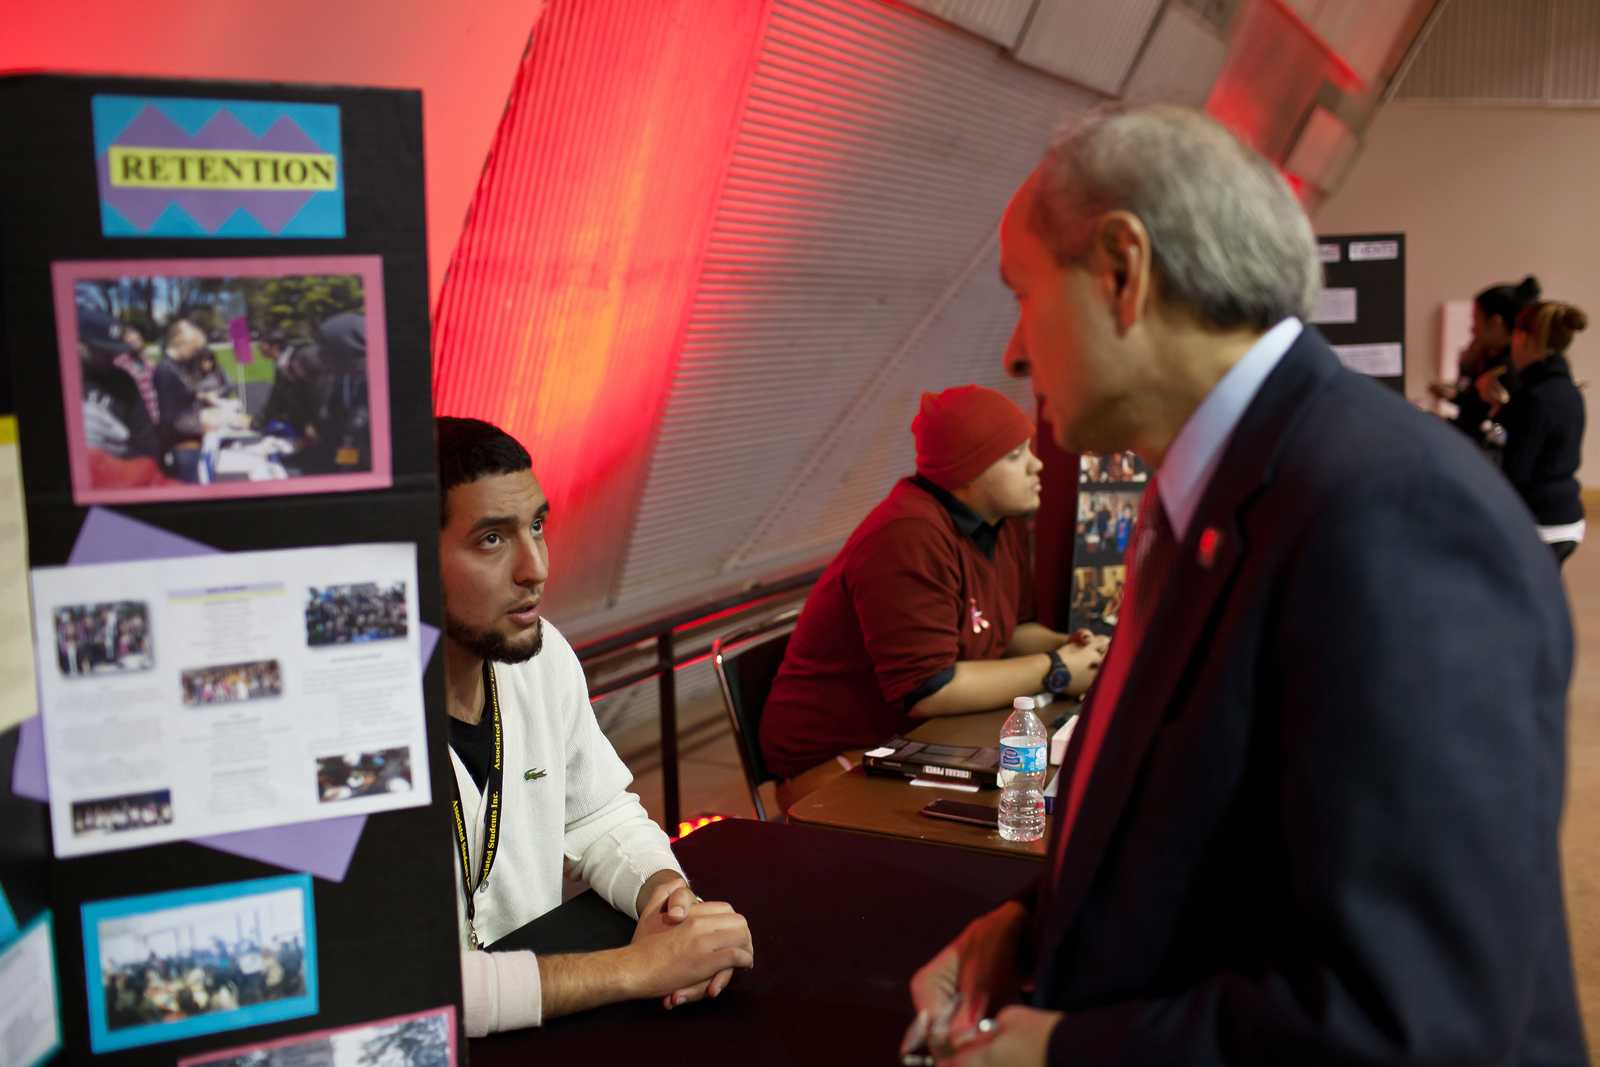 Issa Ibrahim, business major with ASI Project Connect, discusses scholarships with President Leslie E. Wong at the World AIDS Day event at SF State on Tuesday, Dec. 3 2013. The event is part of a global effort to increase awareness which occurs annually on the first of December. Photo by Dariel Medina / Xpress